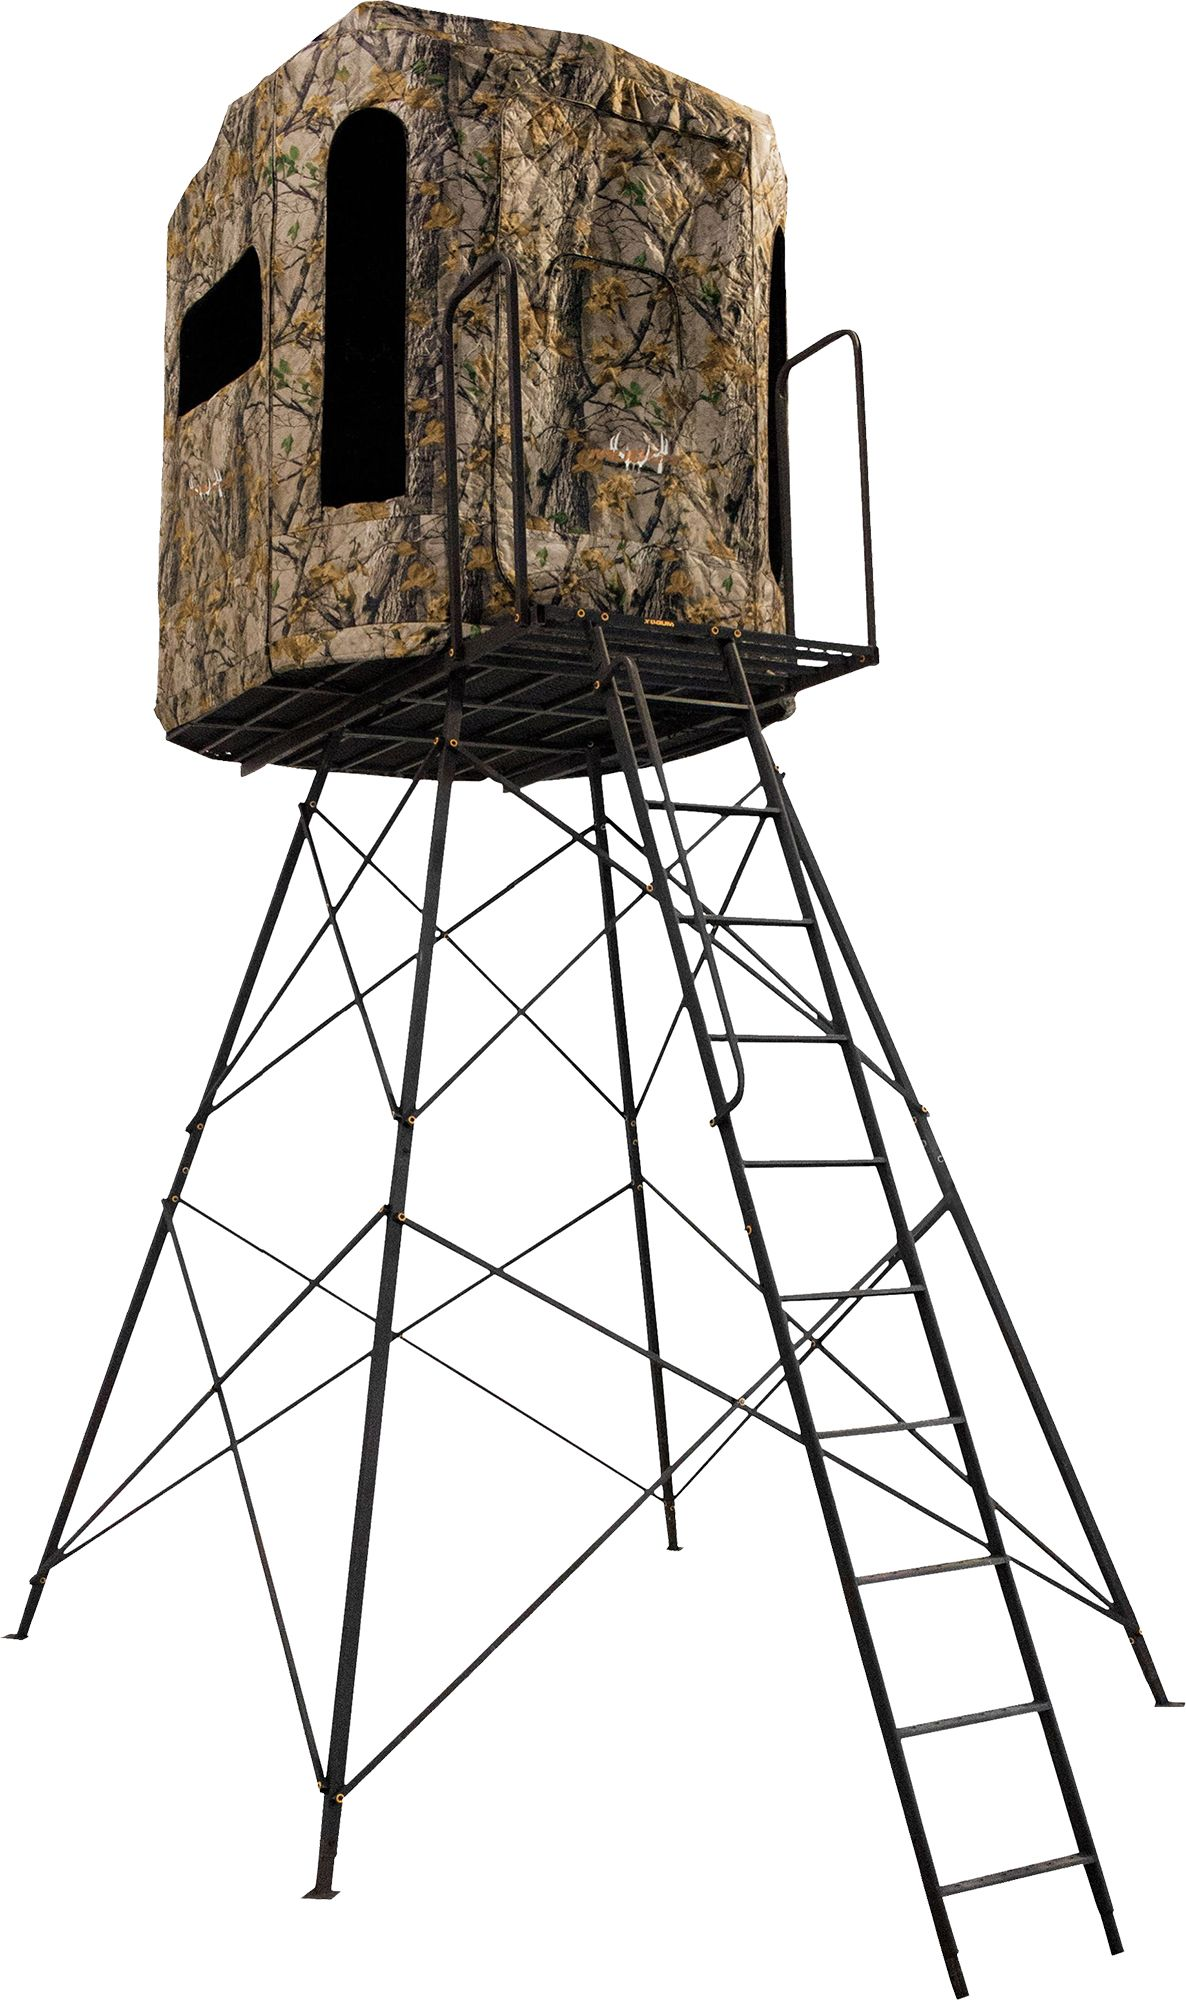 Muddy The Soft Side 360 Blind with Deluxe 10' Tower, steel thumbnail